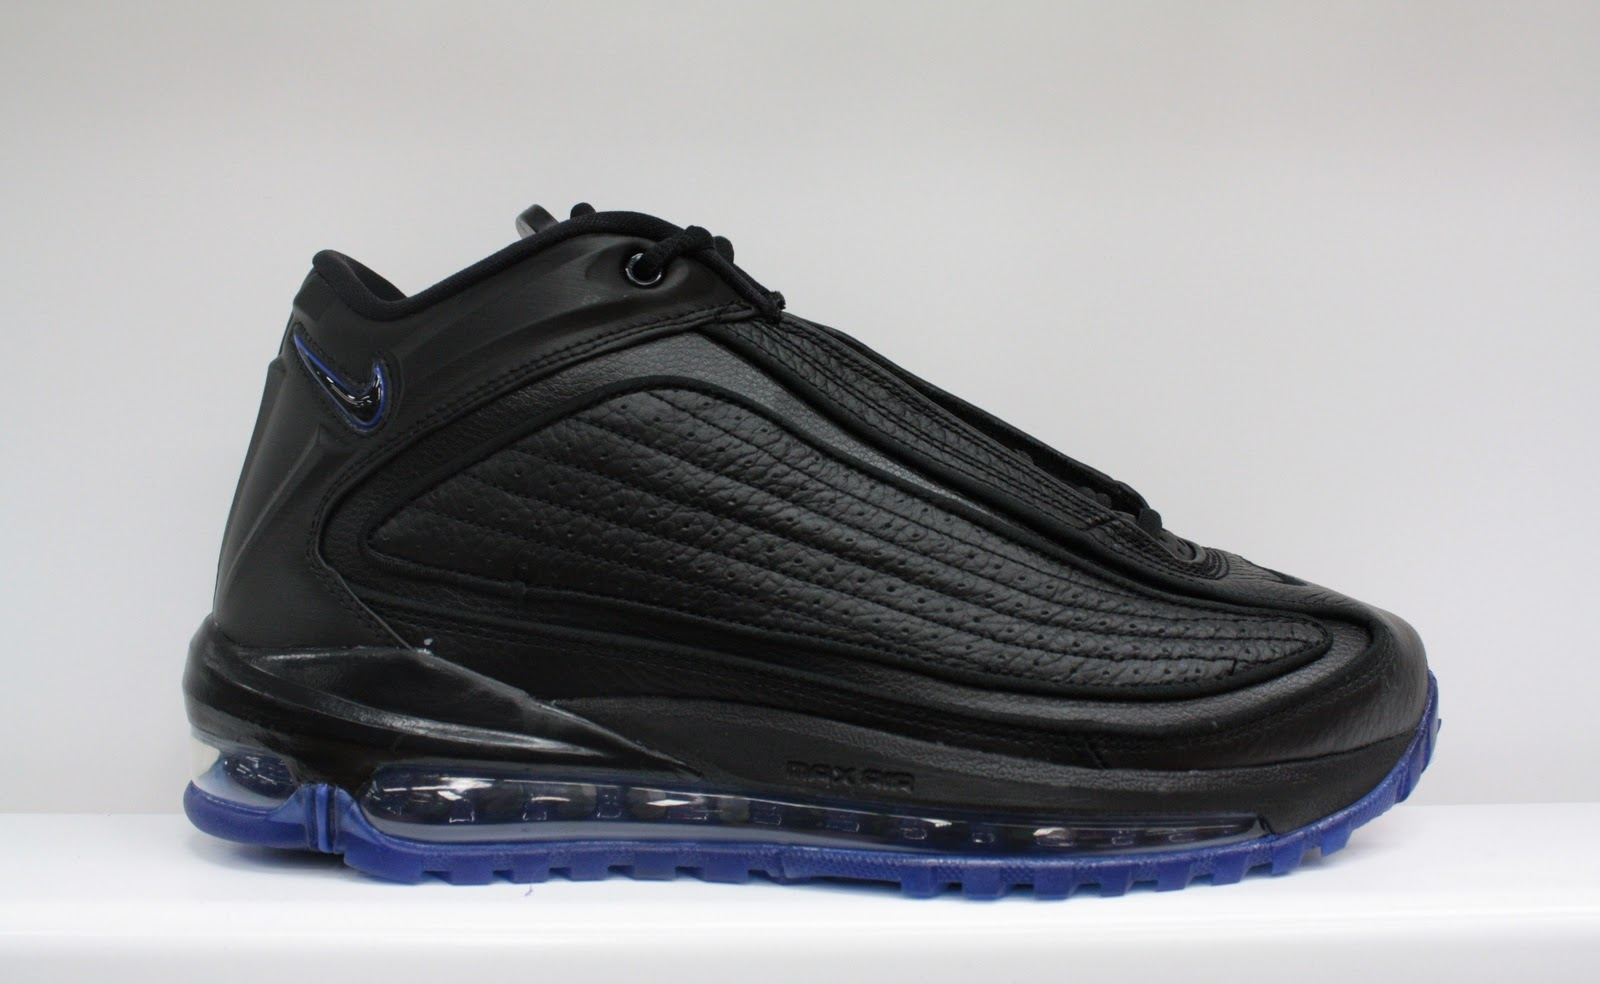 official photos 7eb81 deafc New Nike Air Griffey Max GD II Retro Available in Dr Jays Stores